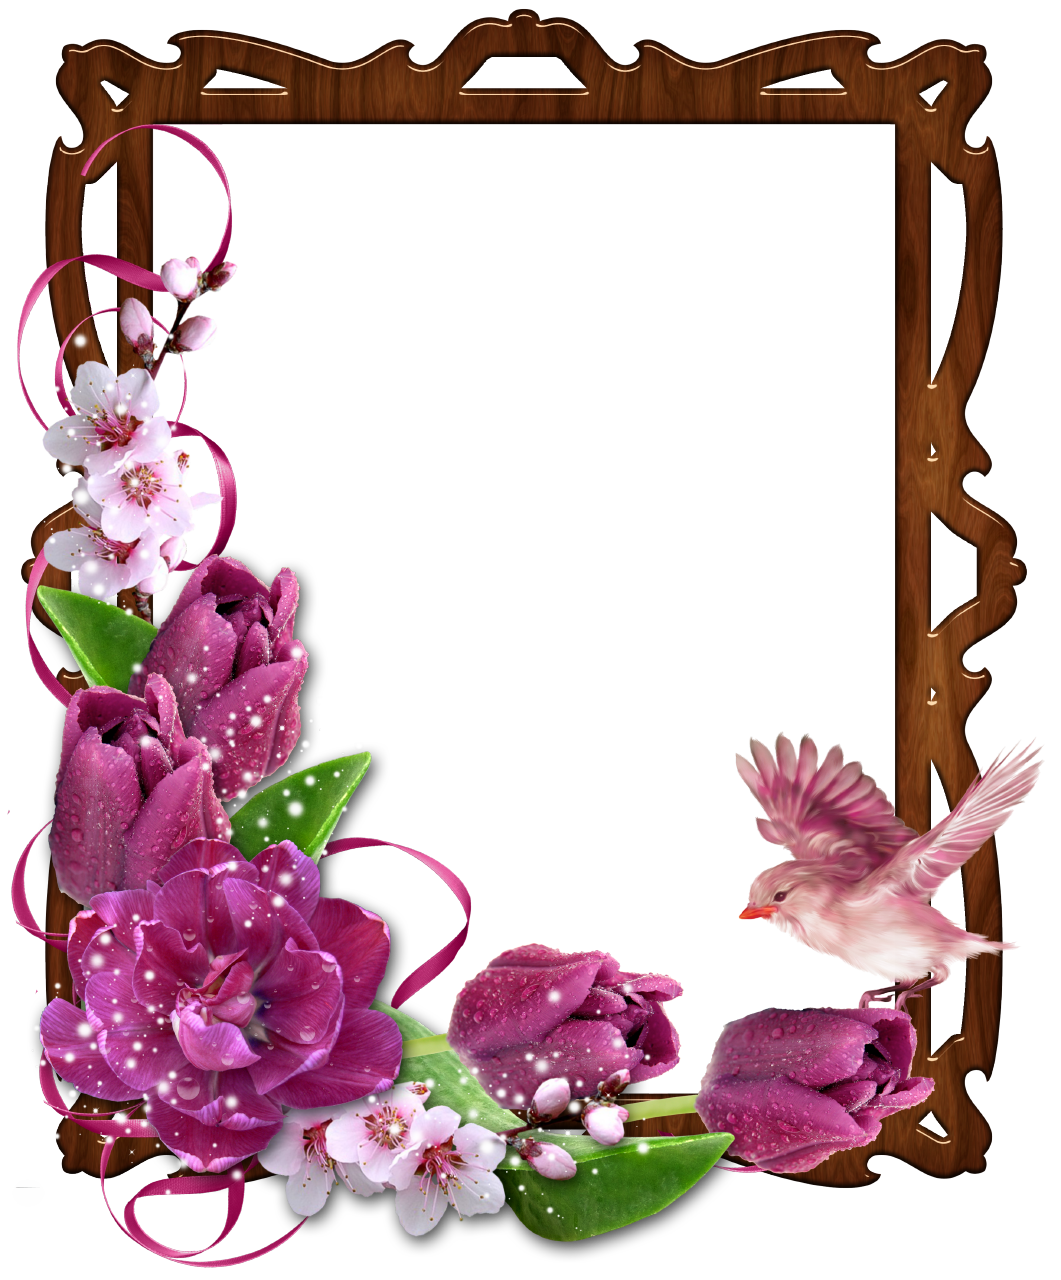 Floral Border Wooden Frame with Bird and Flowers